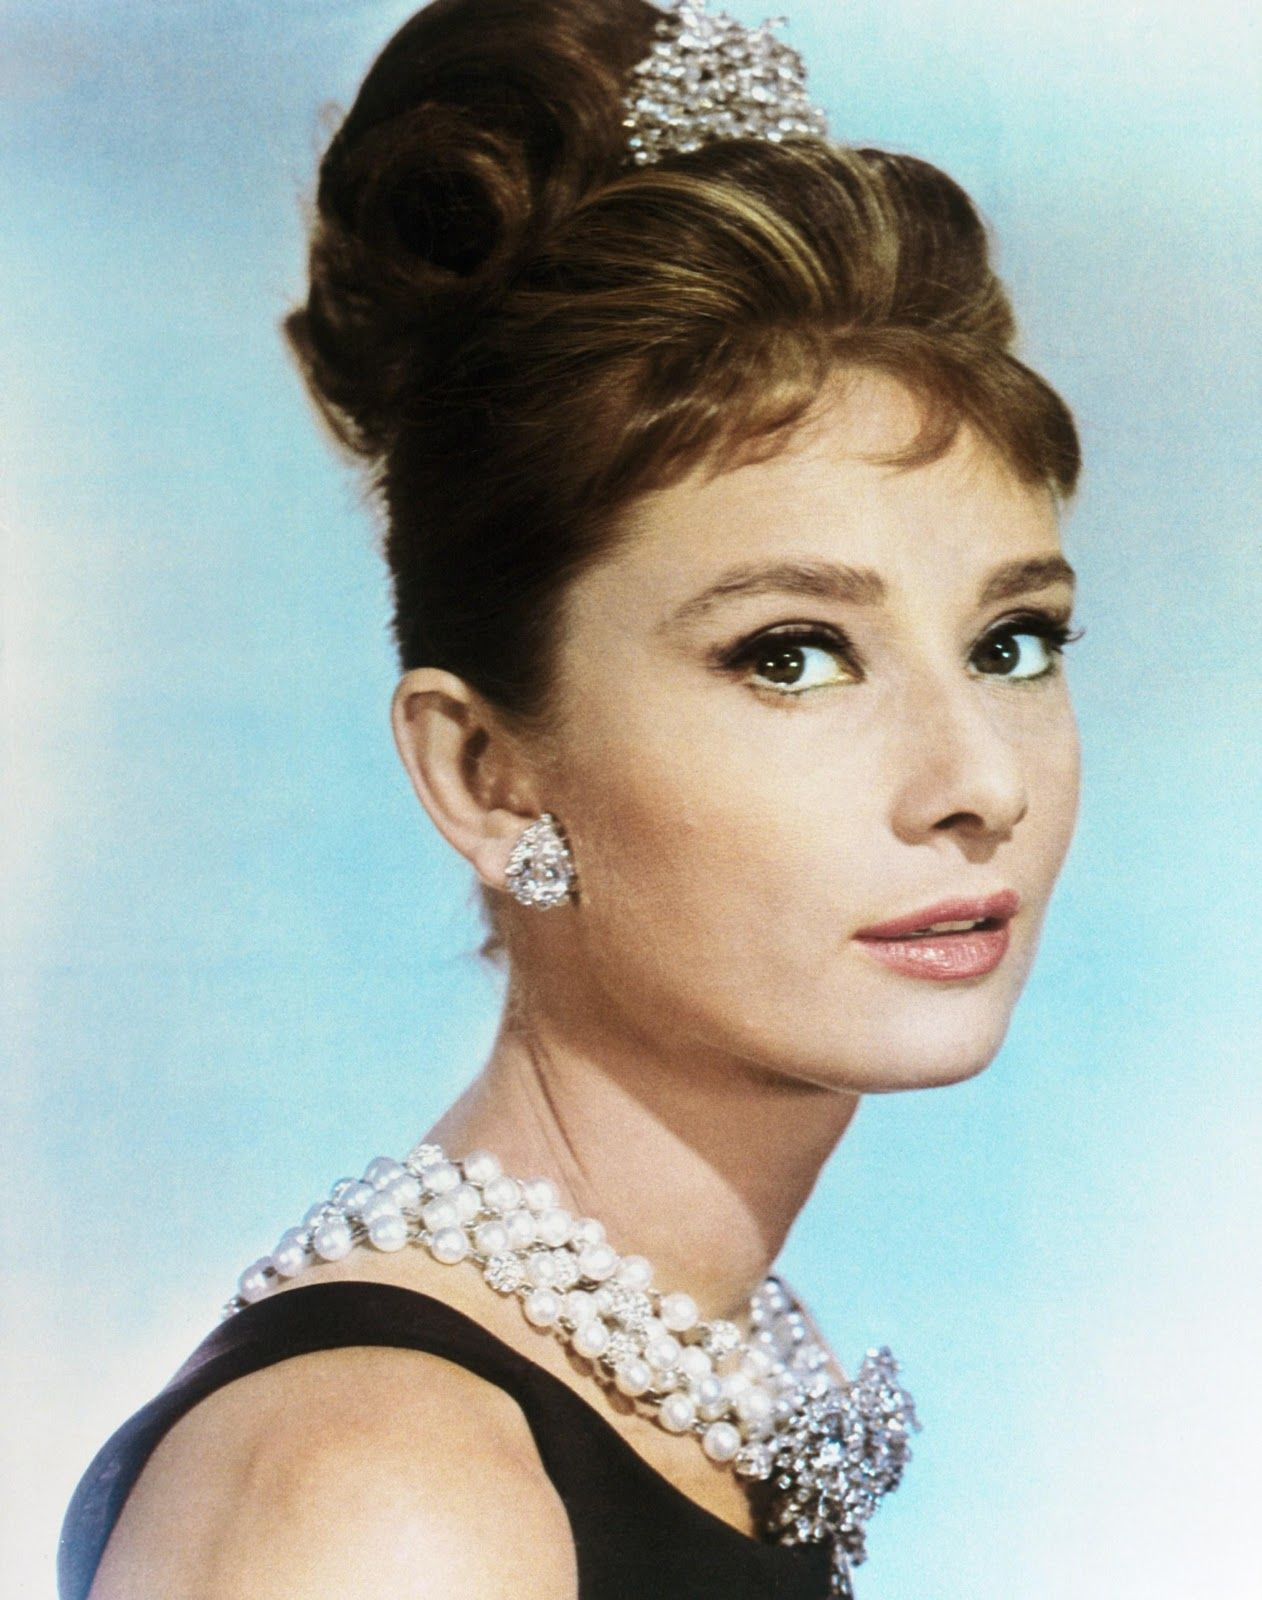 Audrey Hepburn Holly Golightly Beauty How-To Breakfast With Audrey